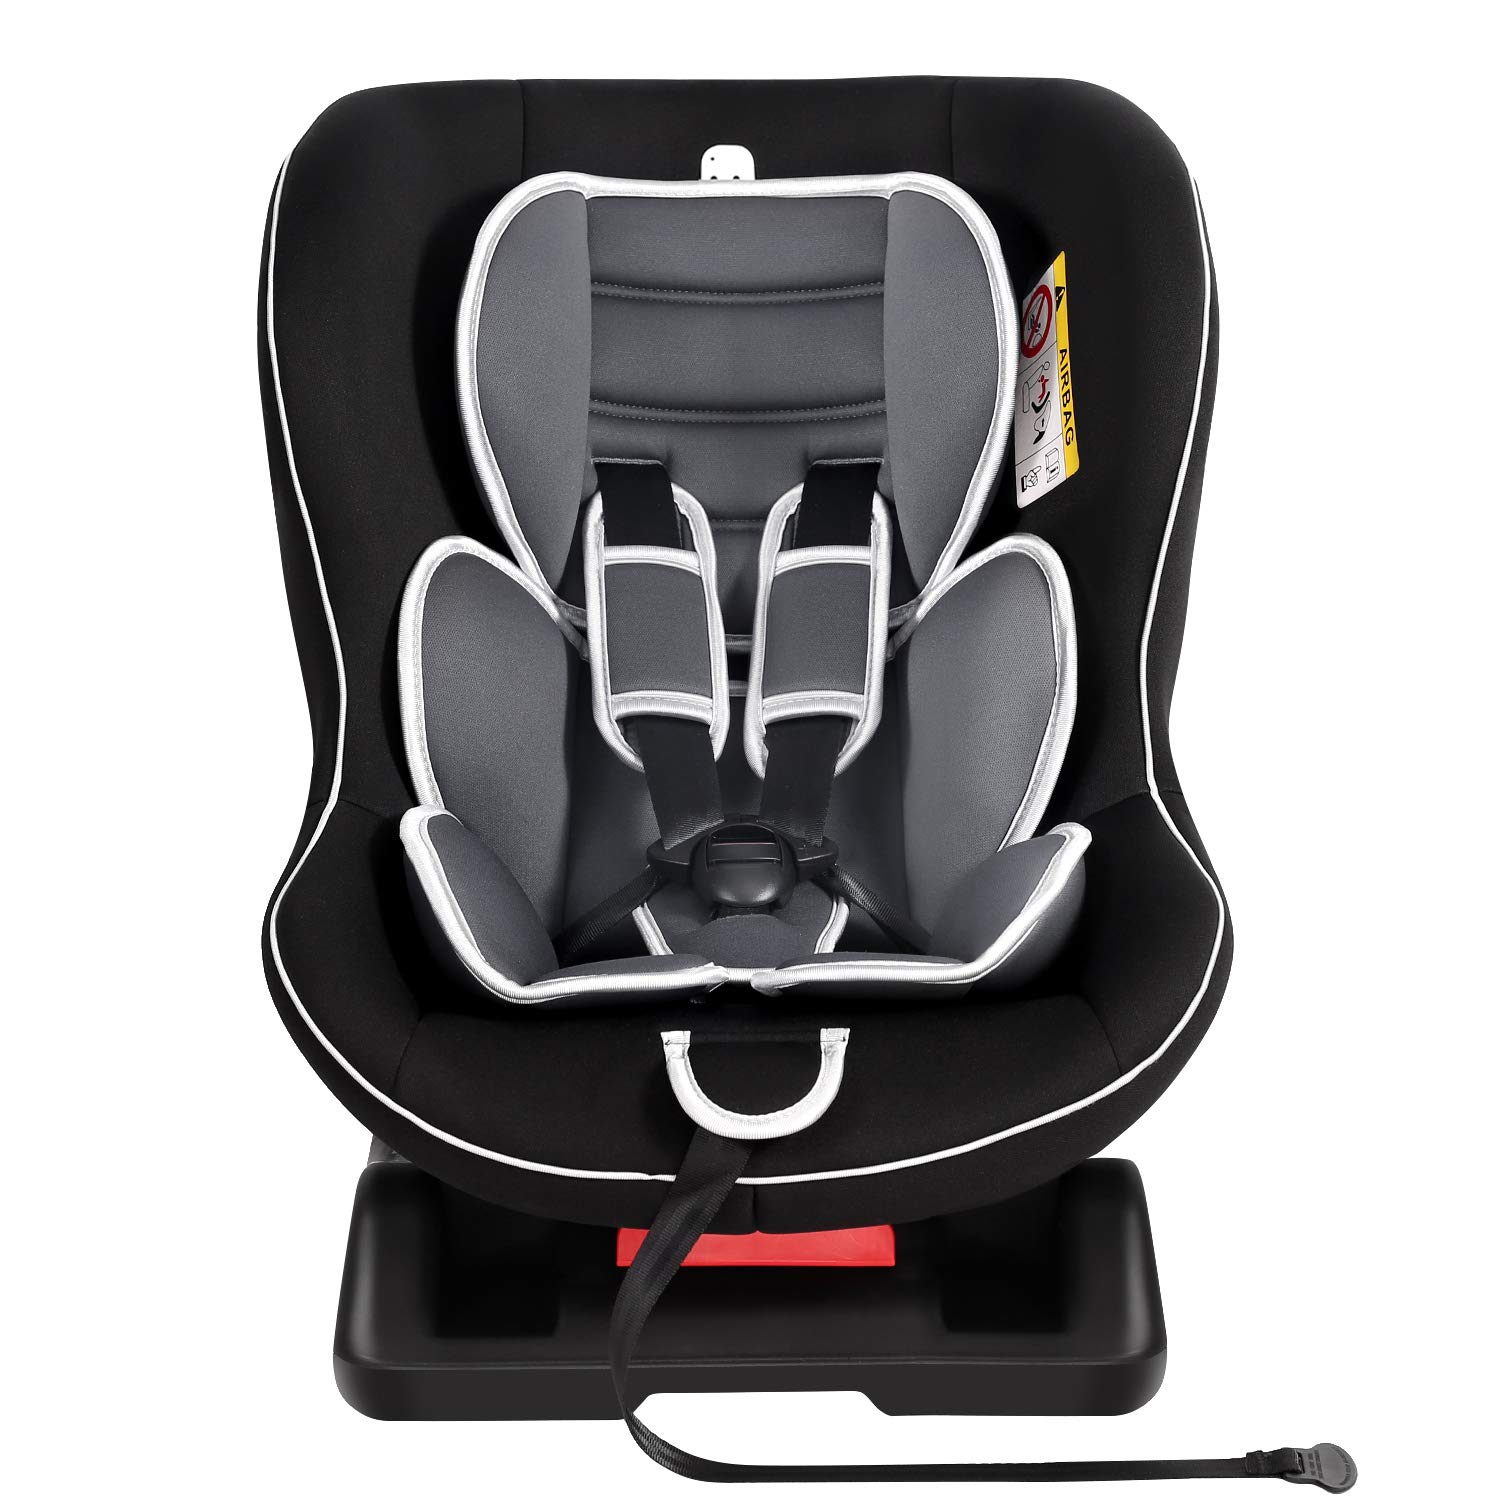 Car Seat, Meinkind Baby Child Car Seat for